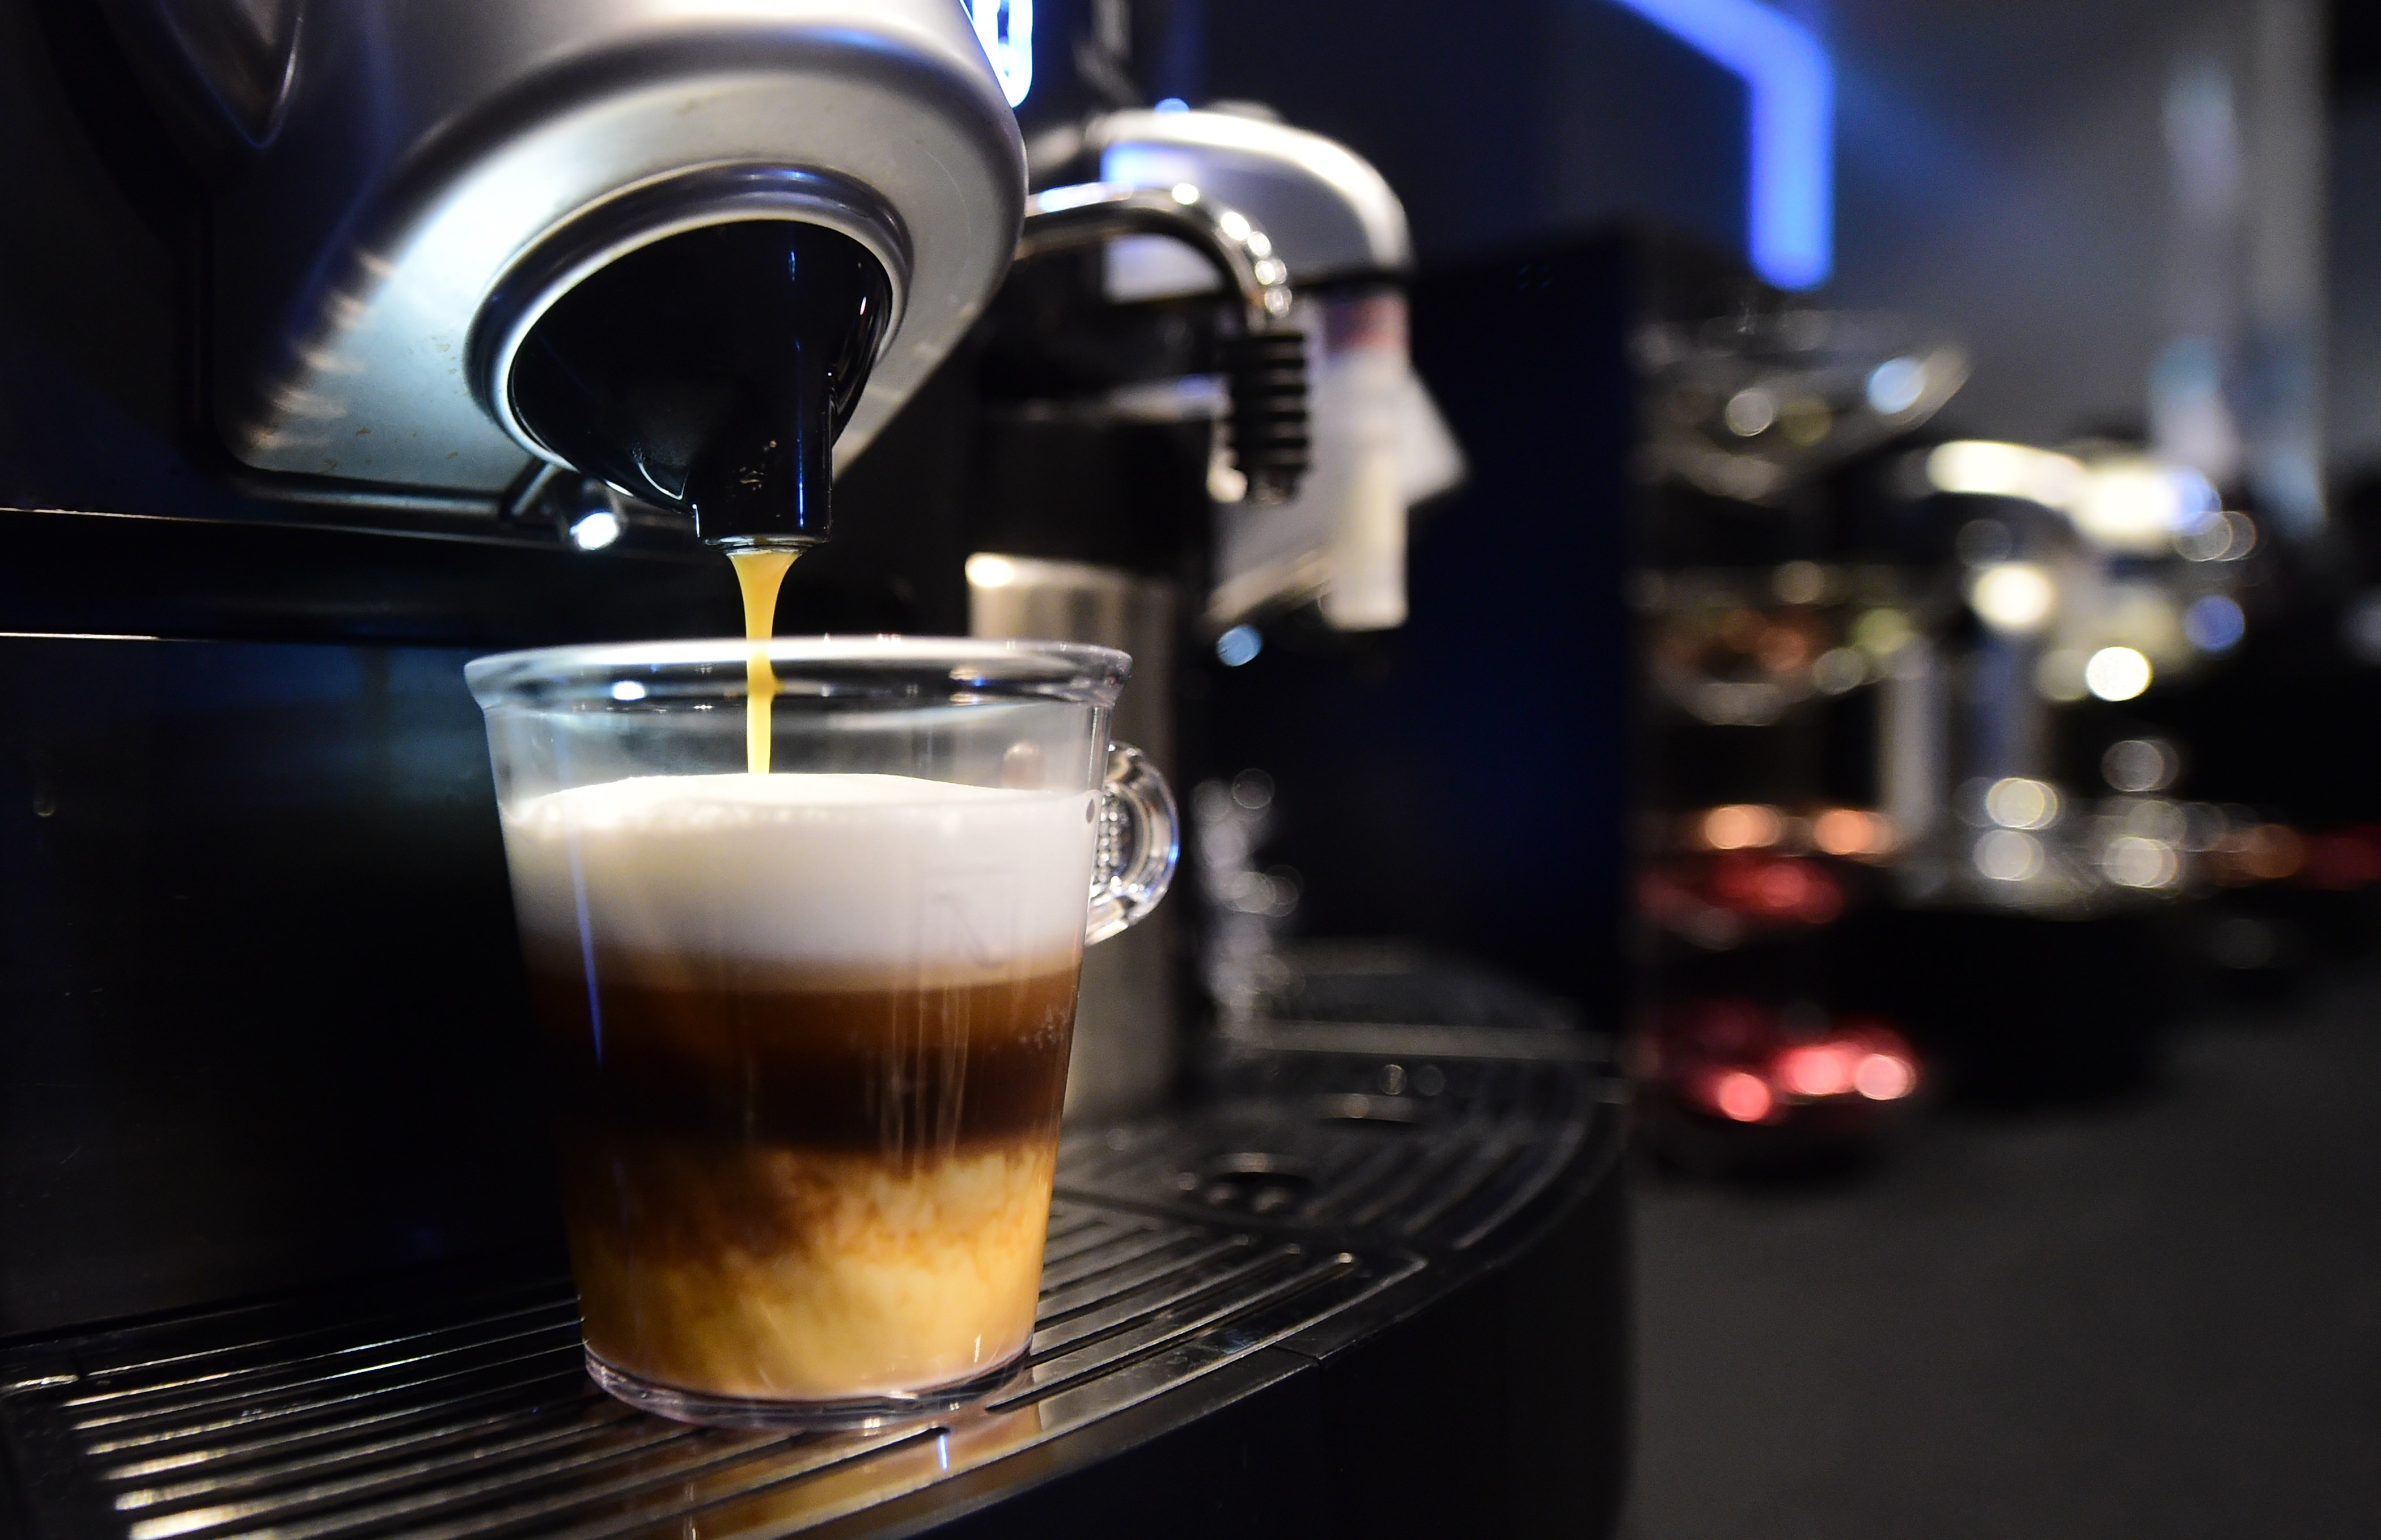 A triple-layered espresso from Nespresso's Gemini CS200 pro coffee machine is prepared at The Luxury Technology Show, produced by RAND Luxury in Hollywood, California on September 30, 2015